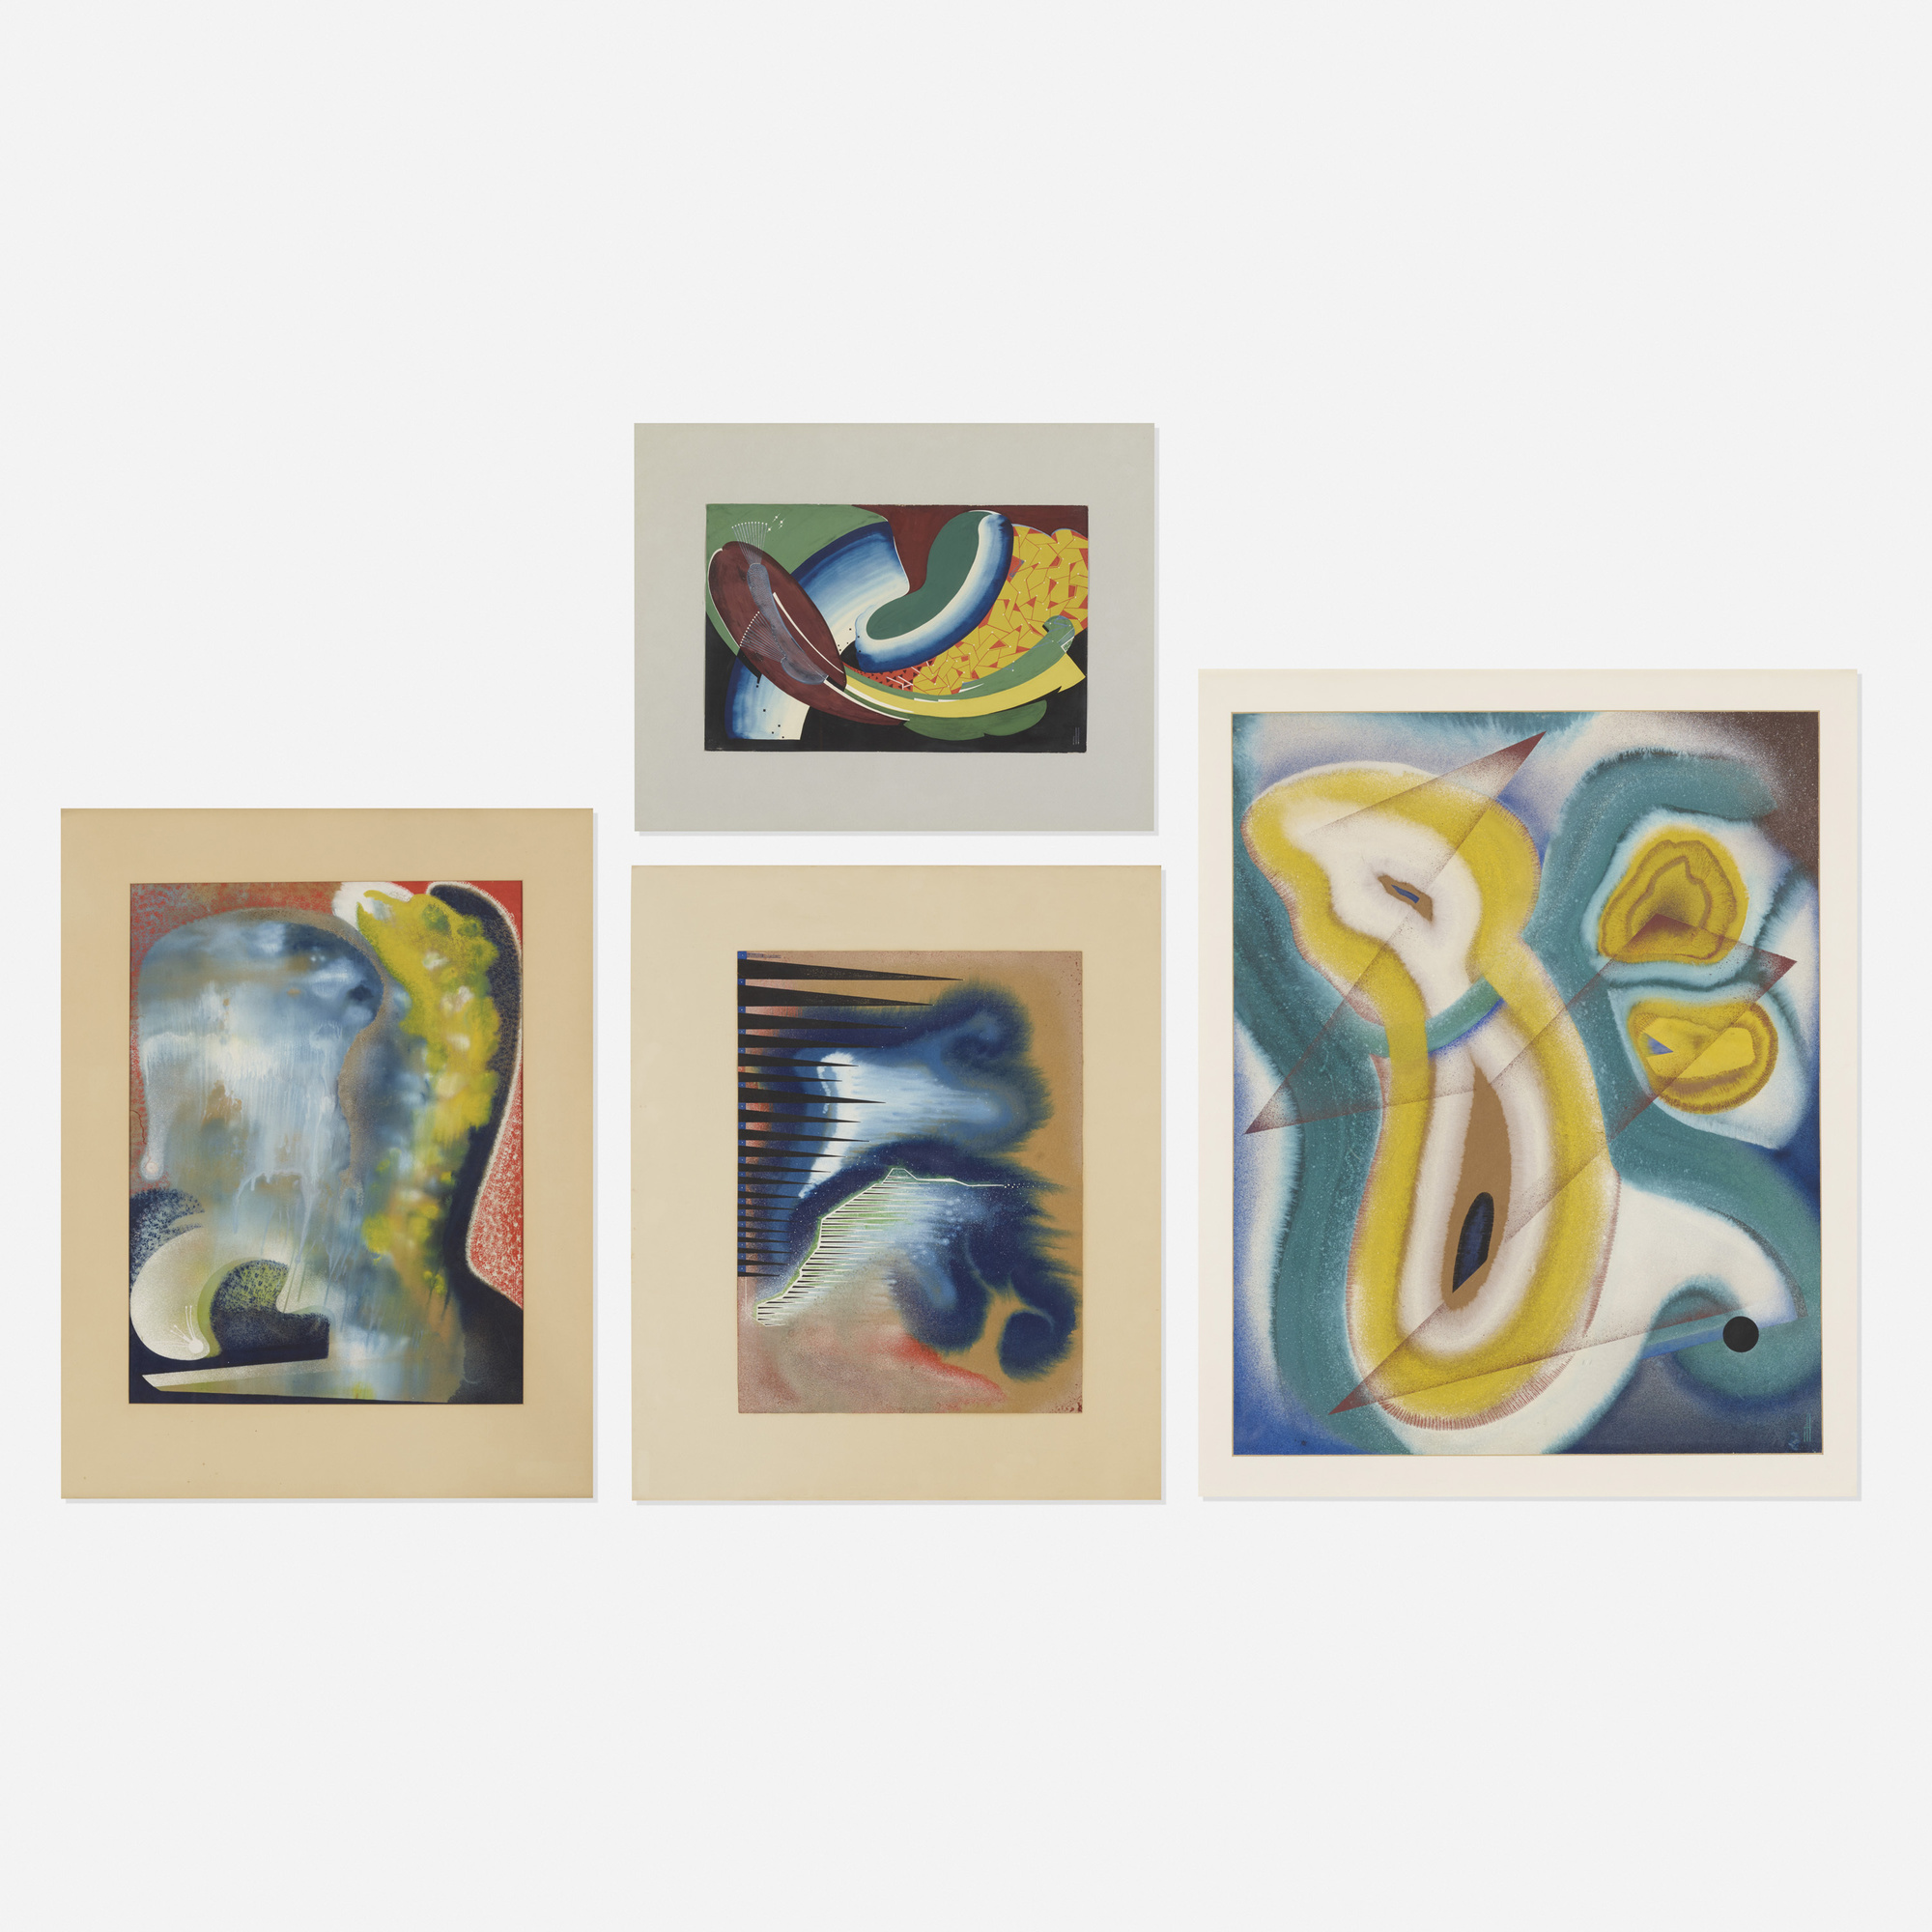 359: Marguerite Hohenberg / Untitled (four works) (1 of 1)